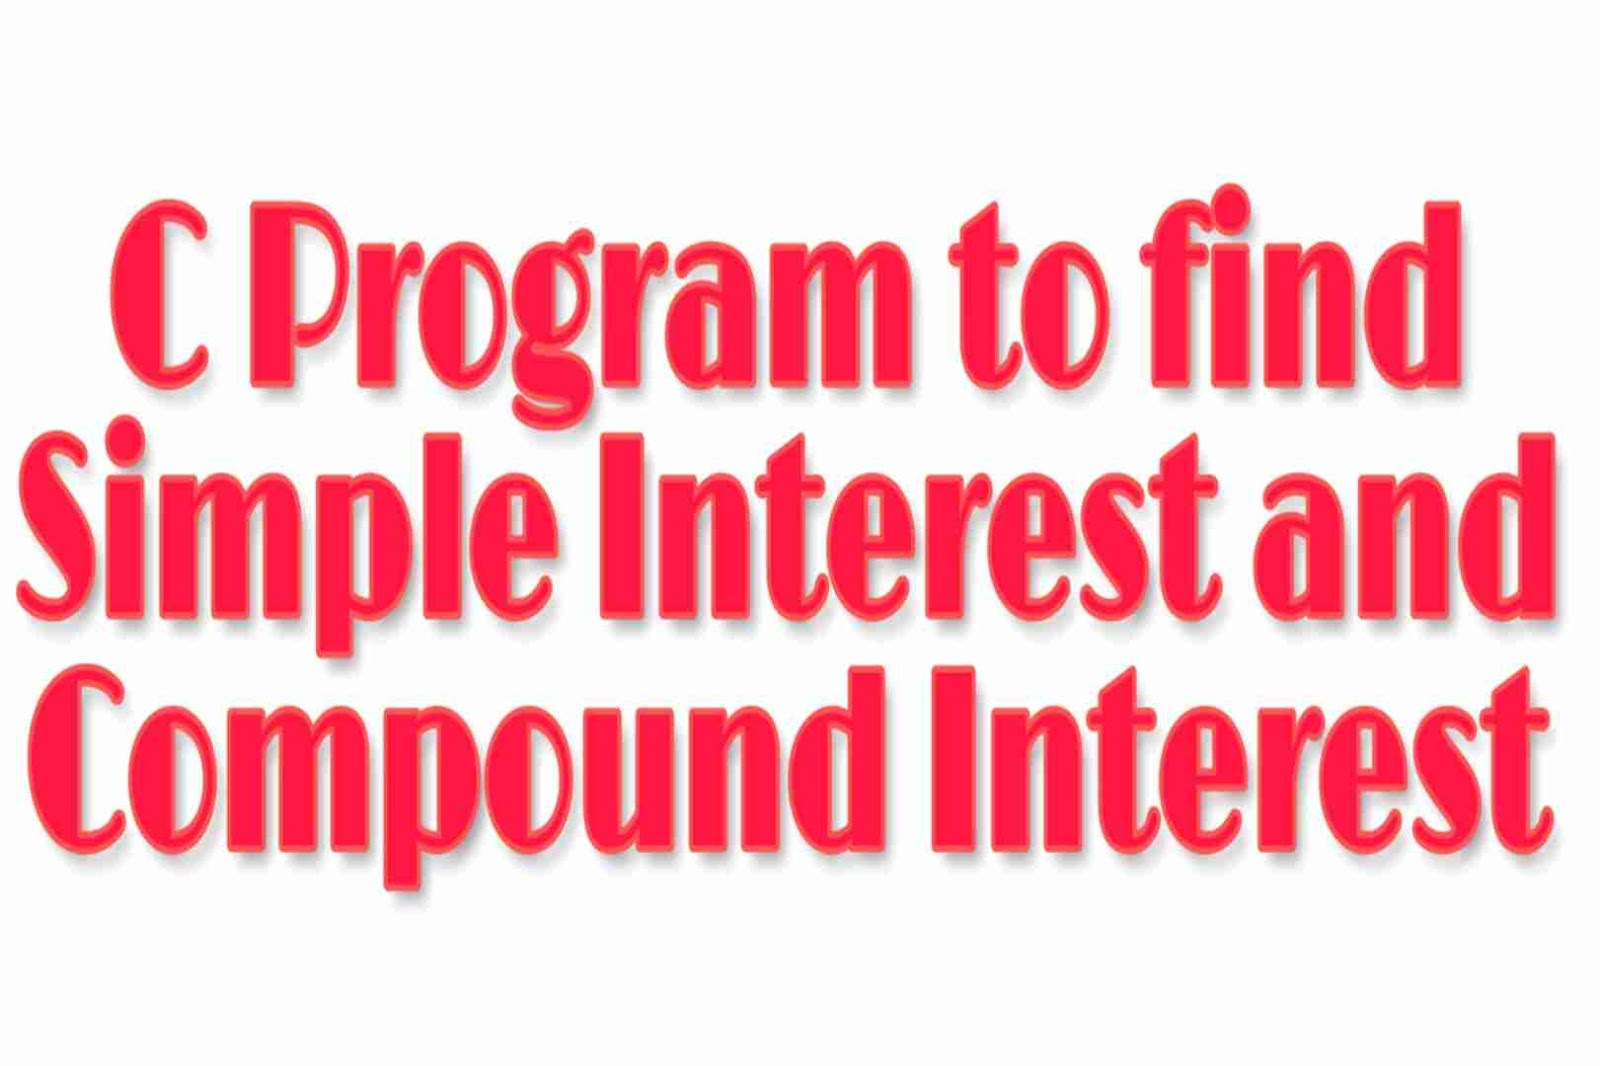 C program to find simple interest and compound interest